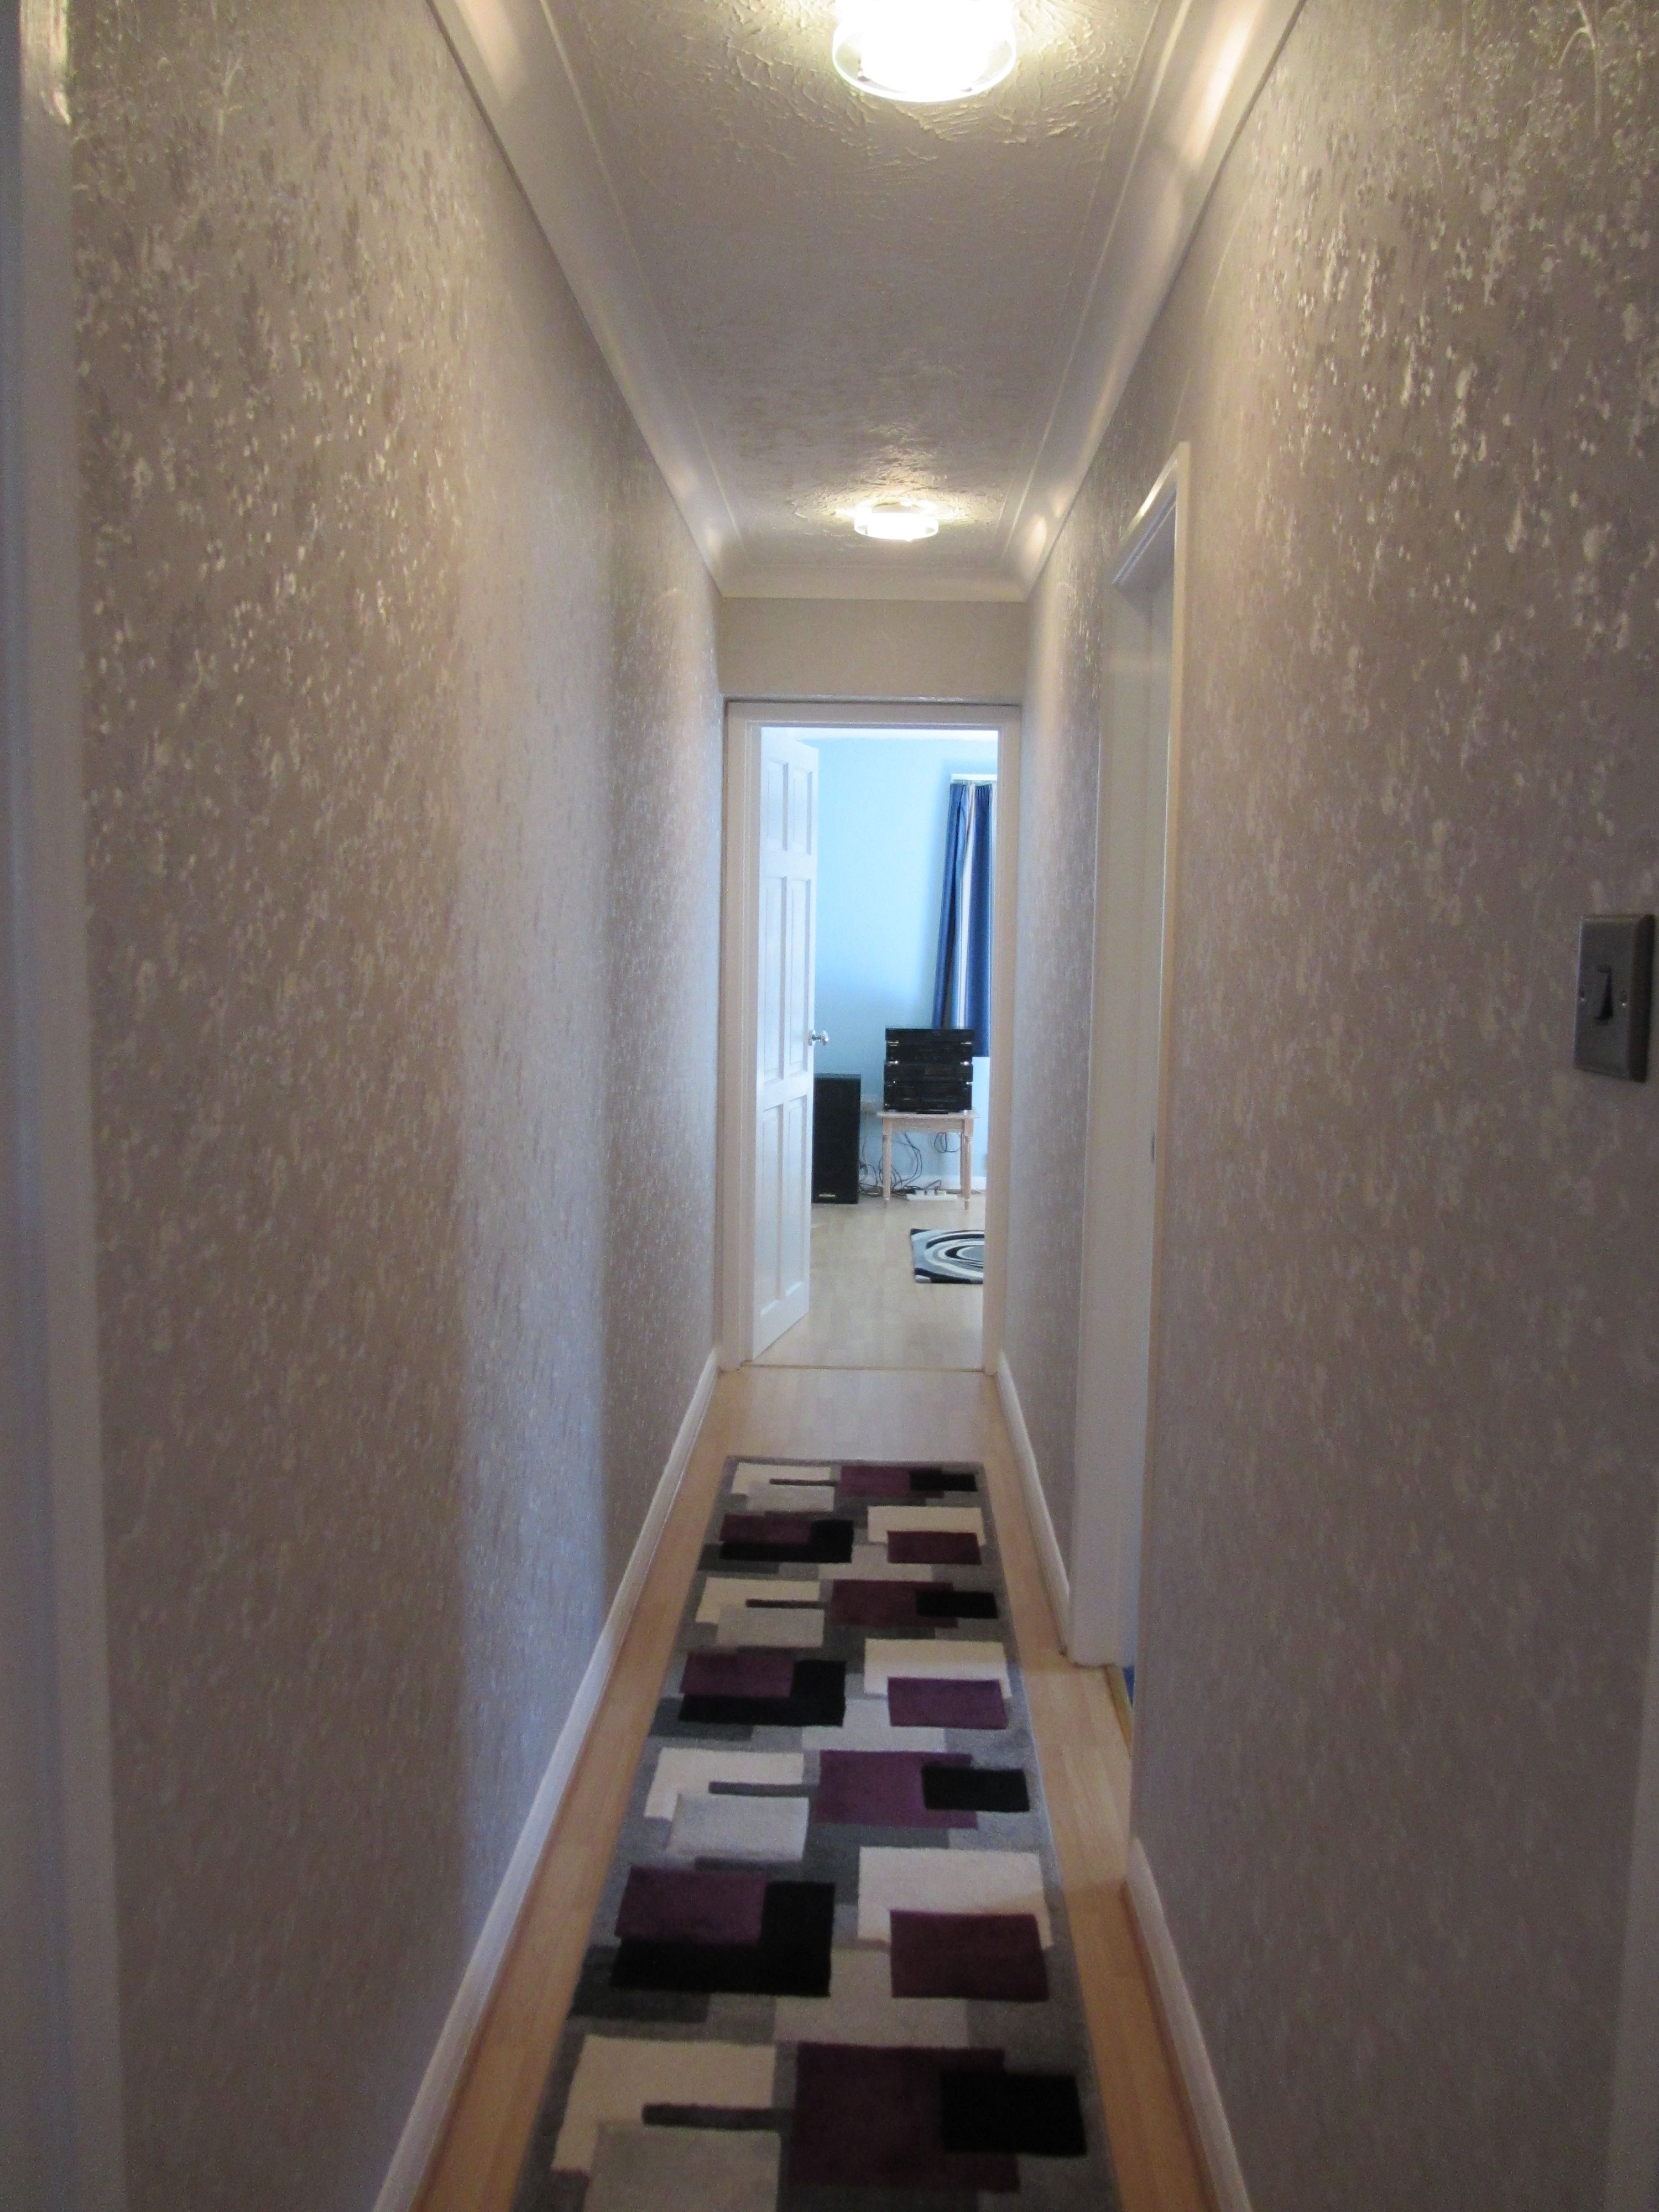 Silver wallpaper hallway  The inner hallway now finished Much brighter with a shinny silver